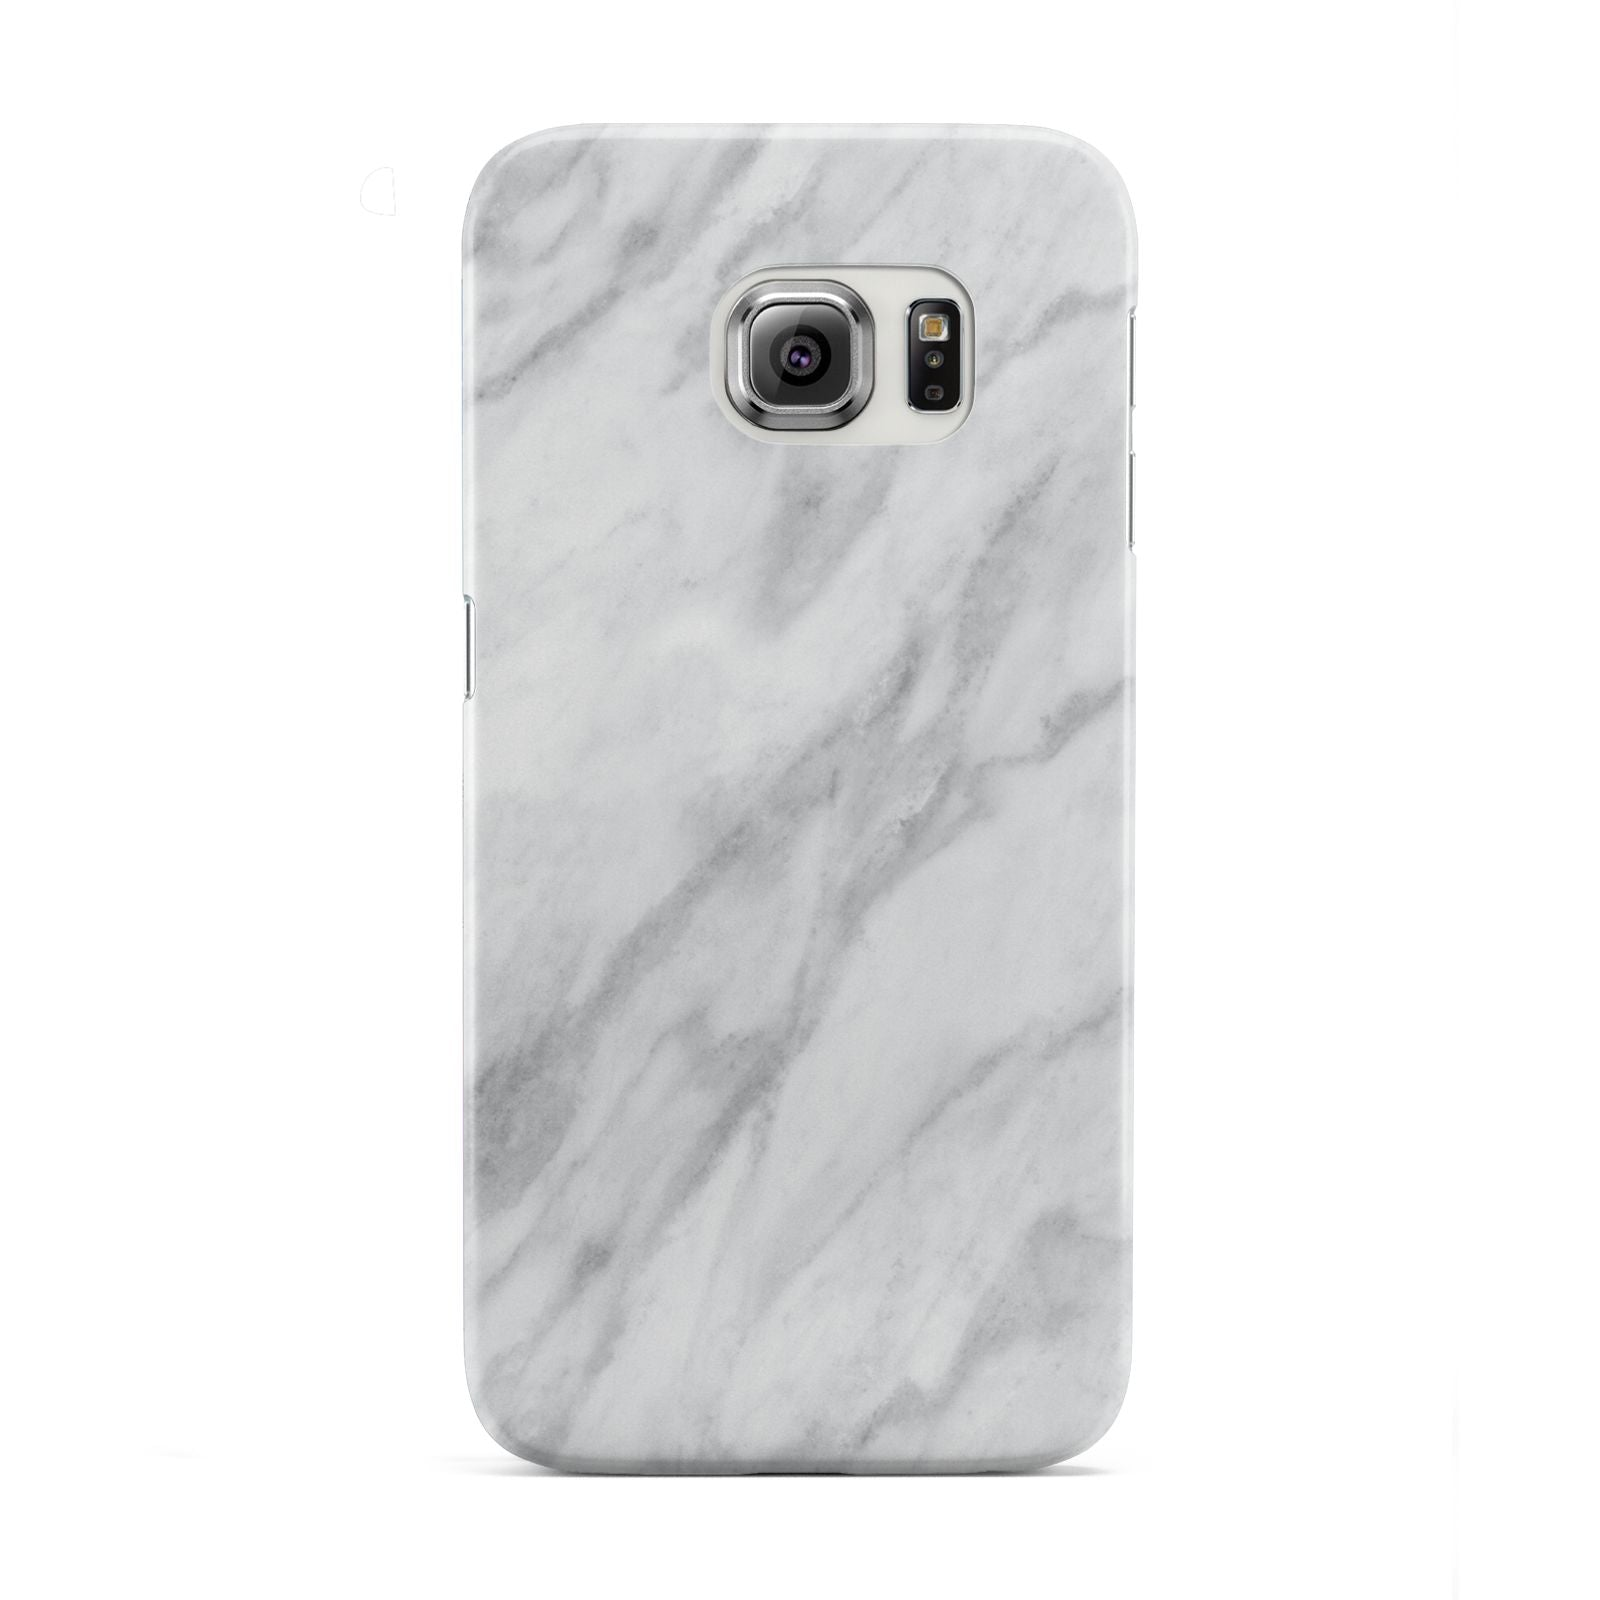 Faux Marble Effect Italian Samsung Galaxy S6 Edge Case